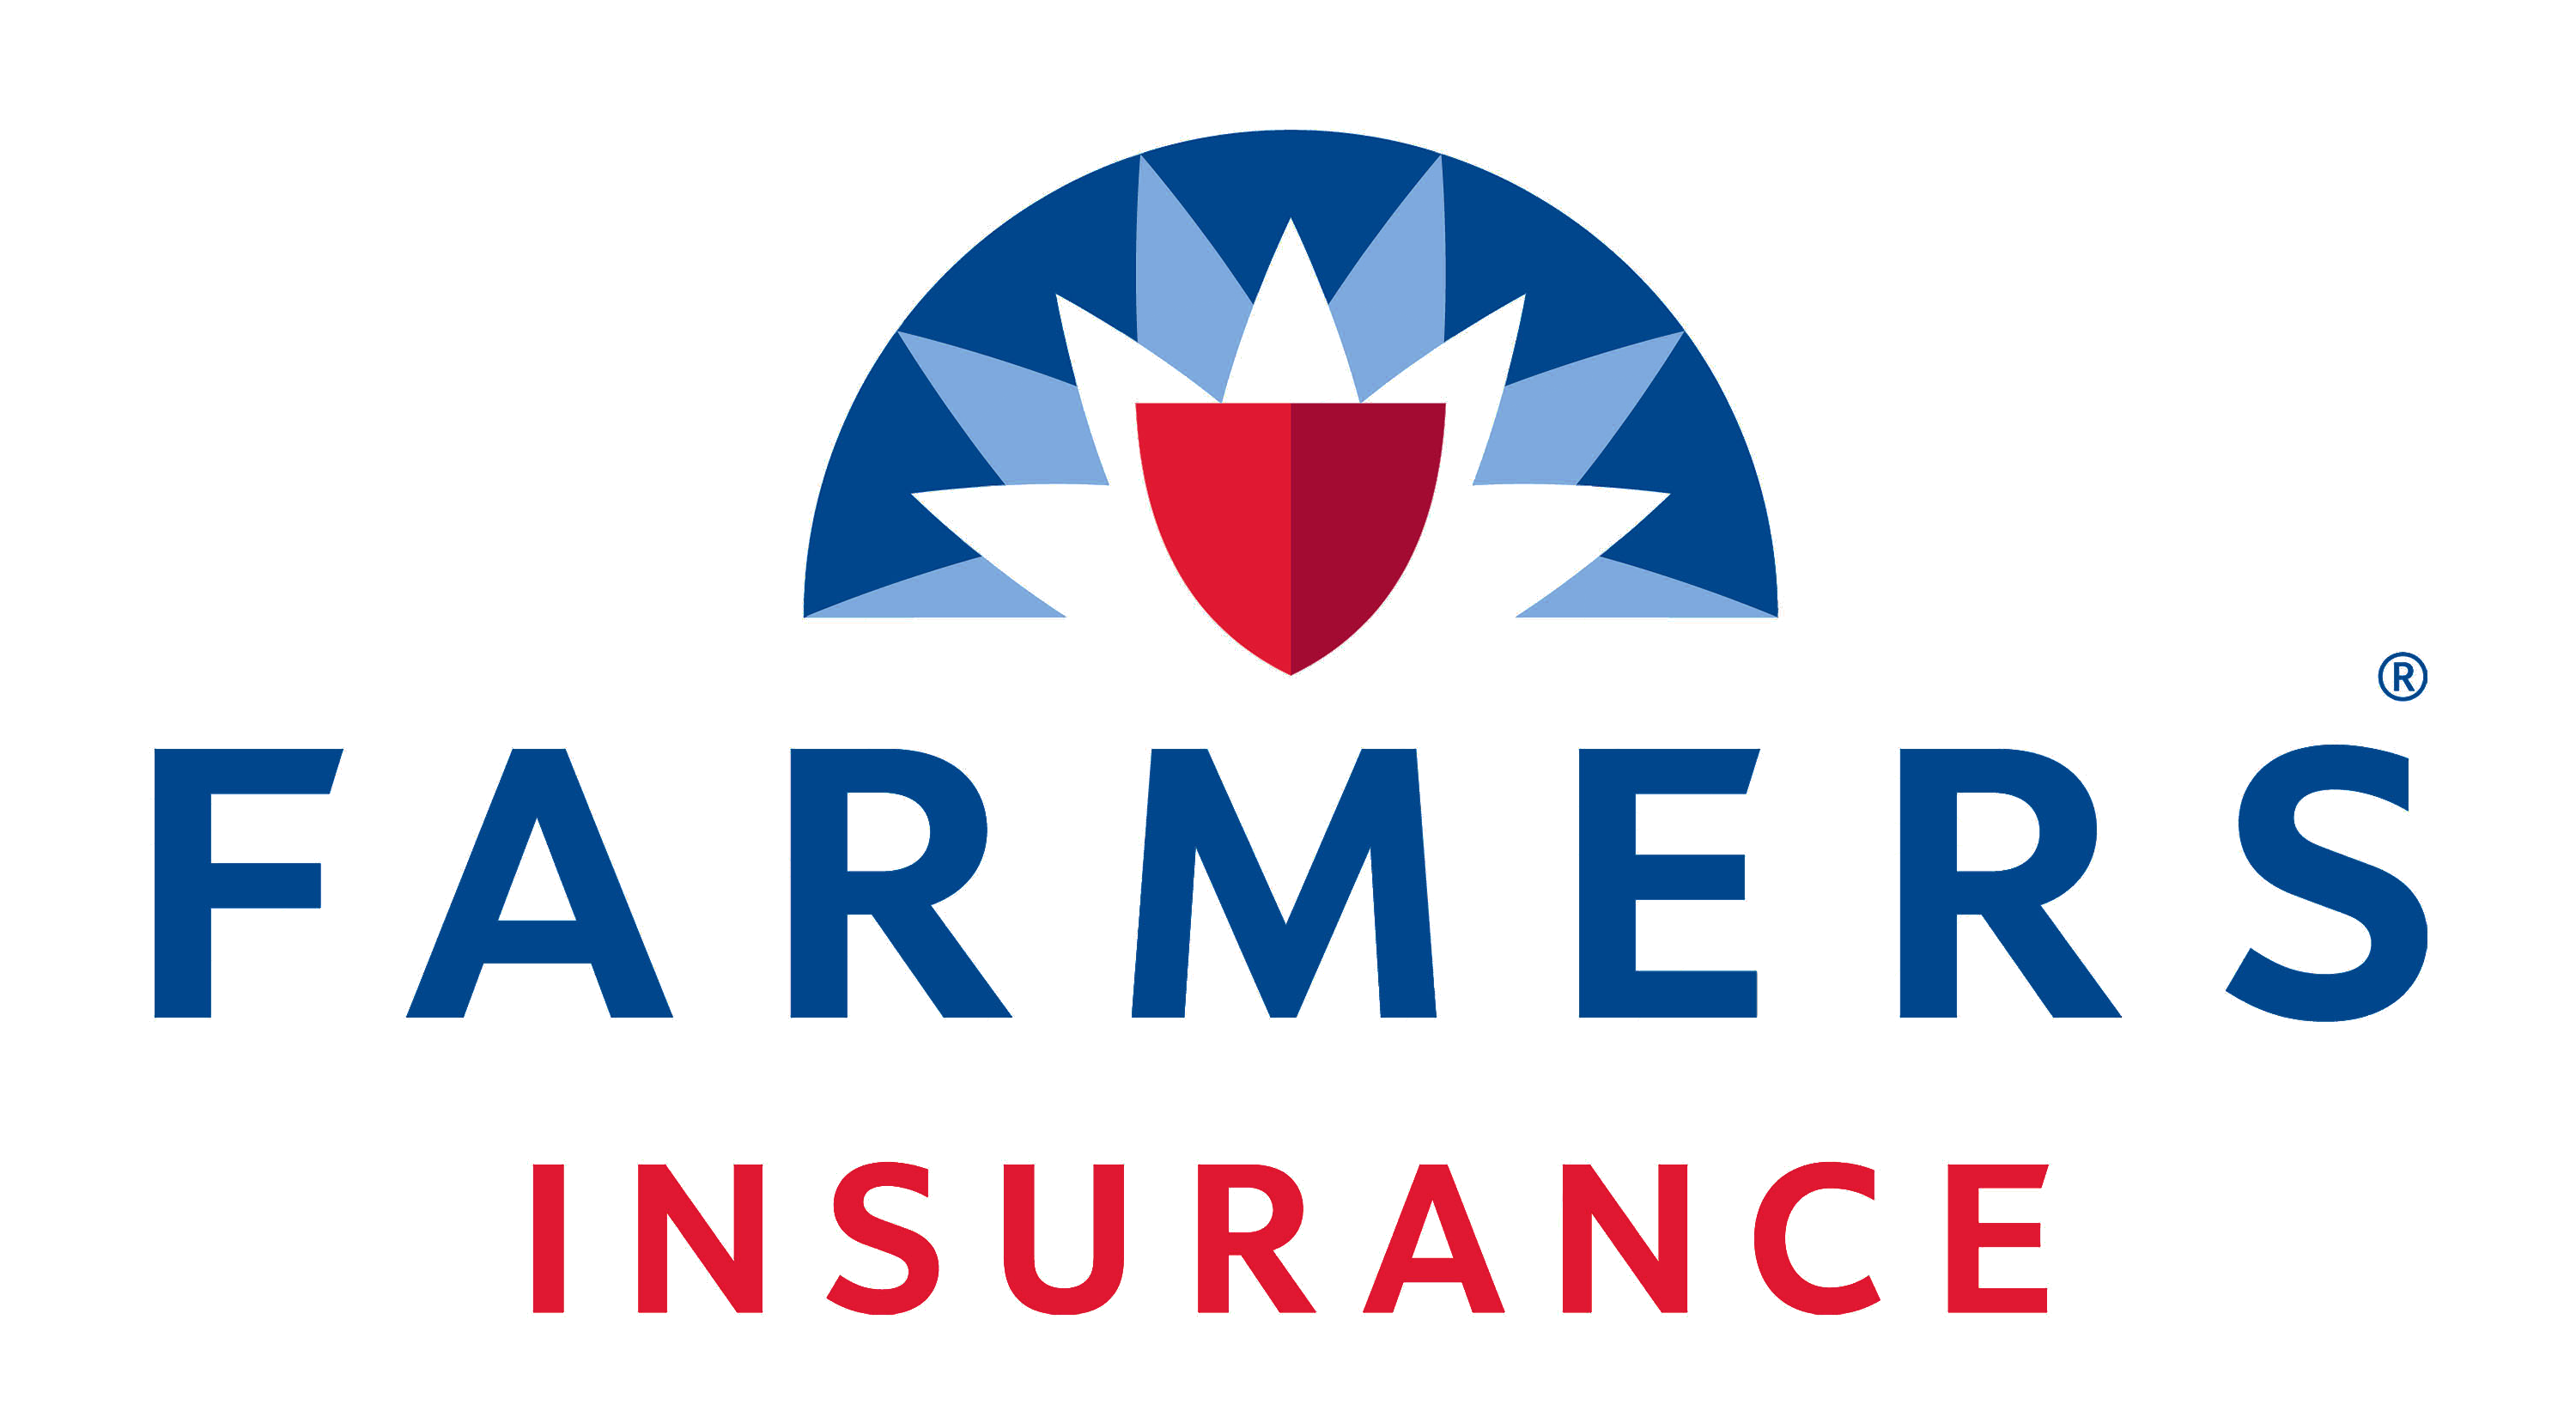 Farmers Insurance Exchange Logo PNG Image.